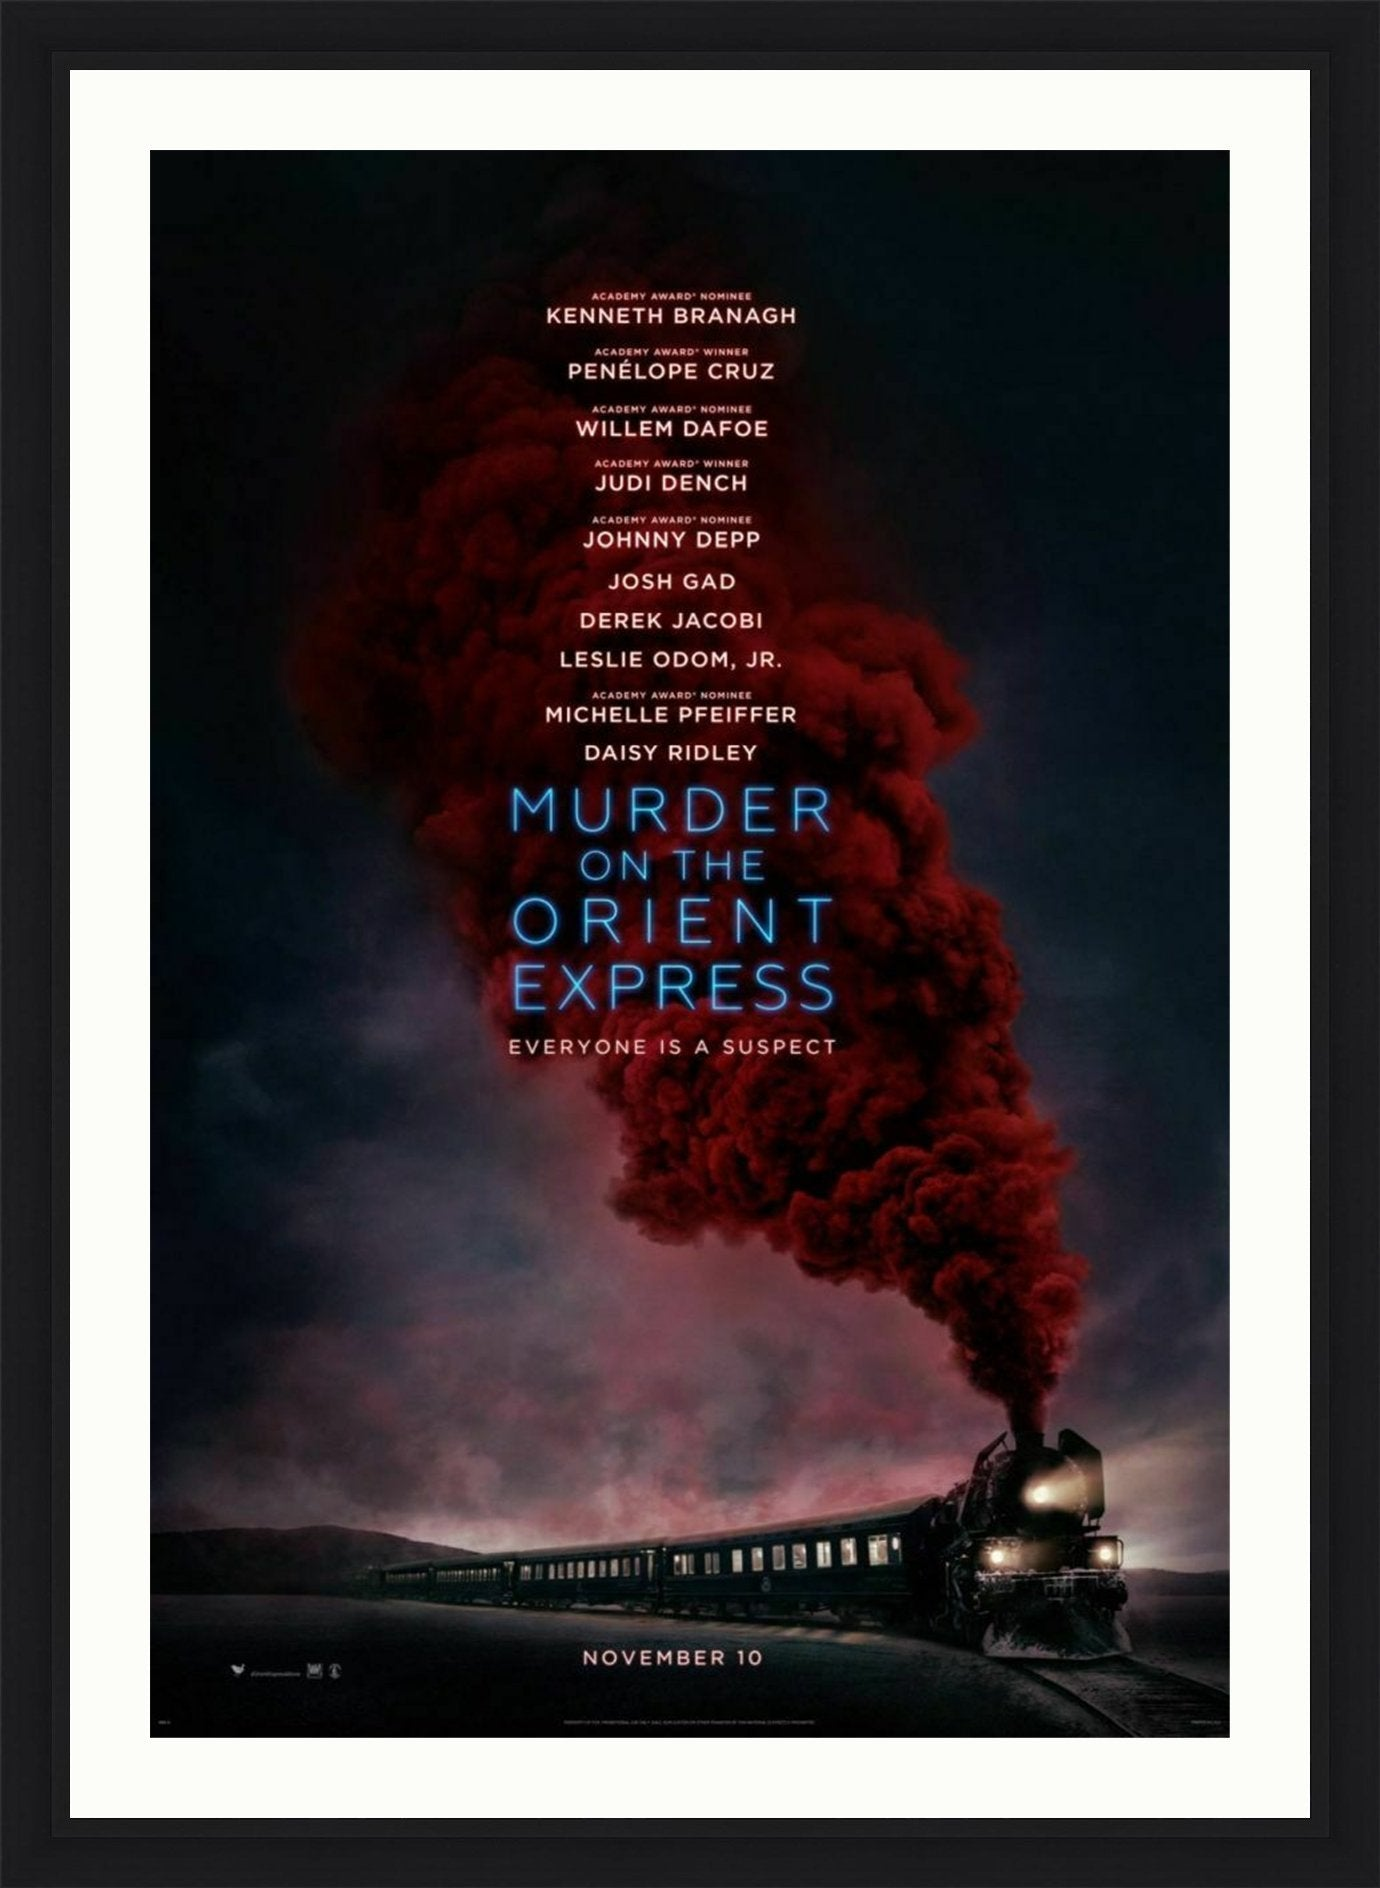 An original movie poster for the film Murder on the Orient Express